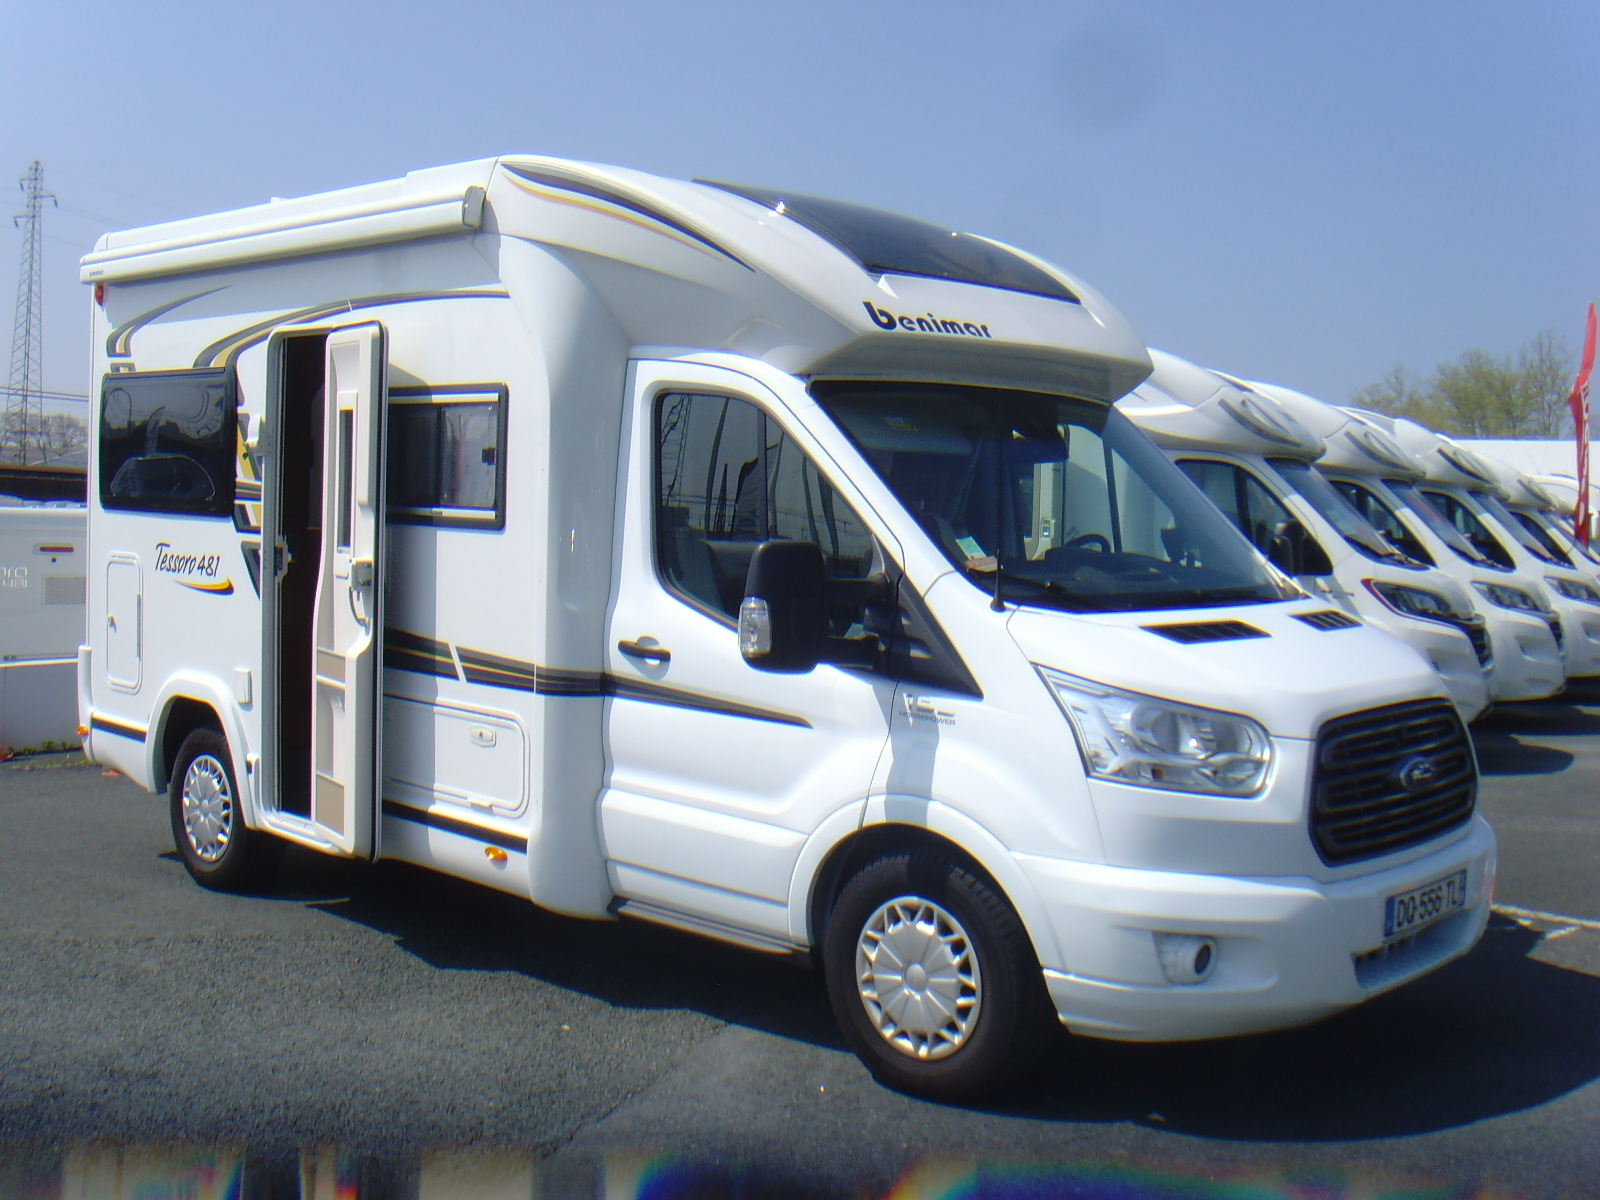 Vente Camping Car Occasion Bayonne